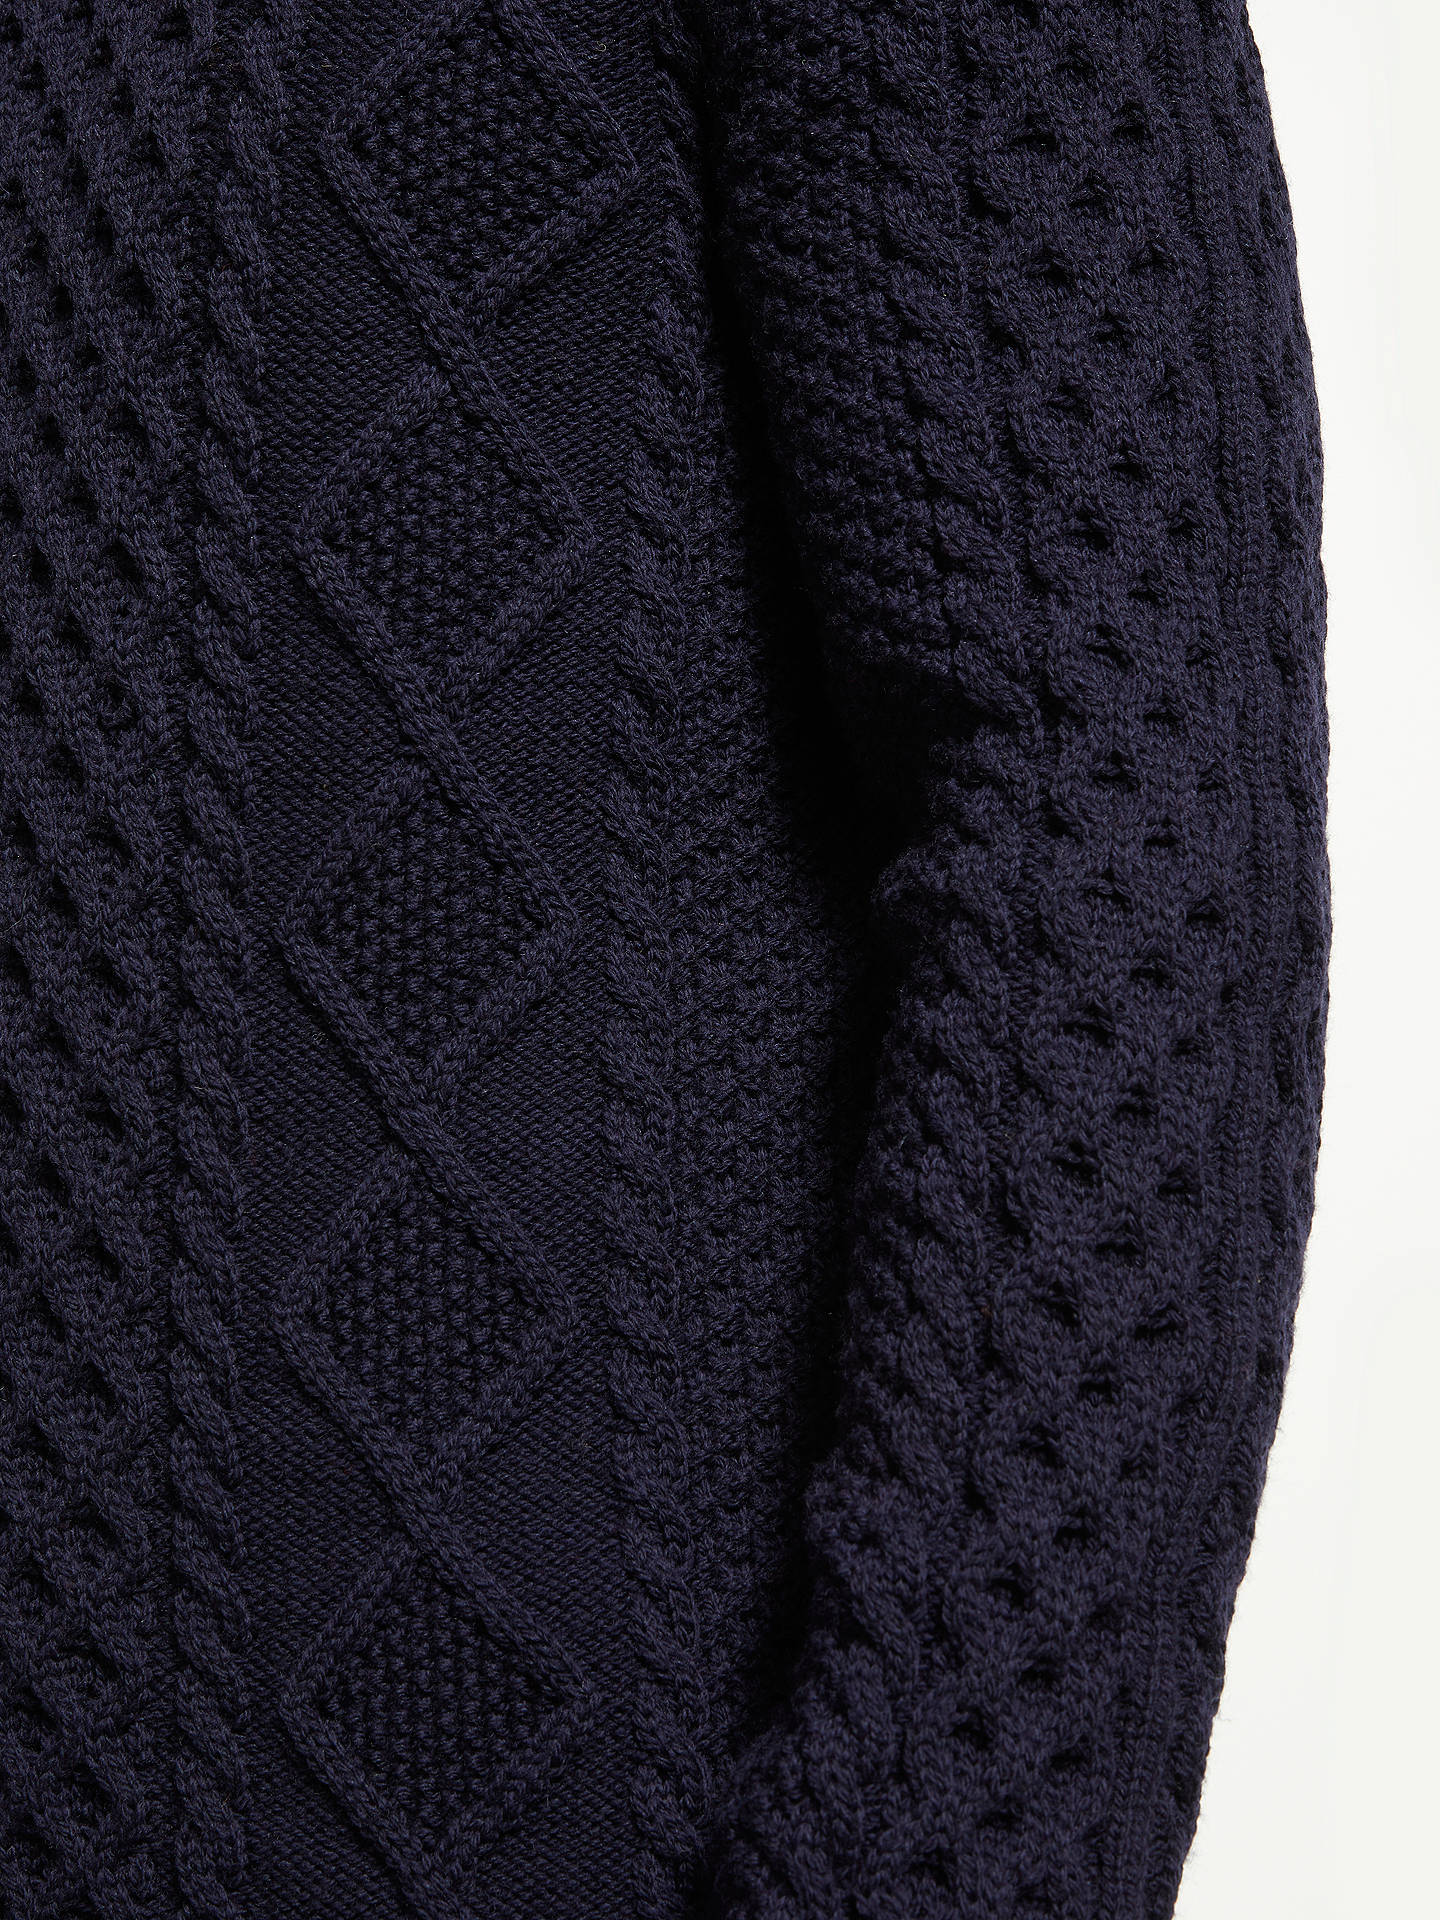 cfd5303c540 Gloverall for John Lewis & Partners Aran Cable Knit Jumper at John ...